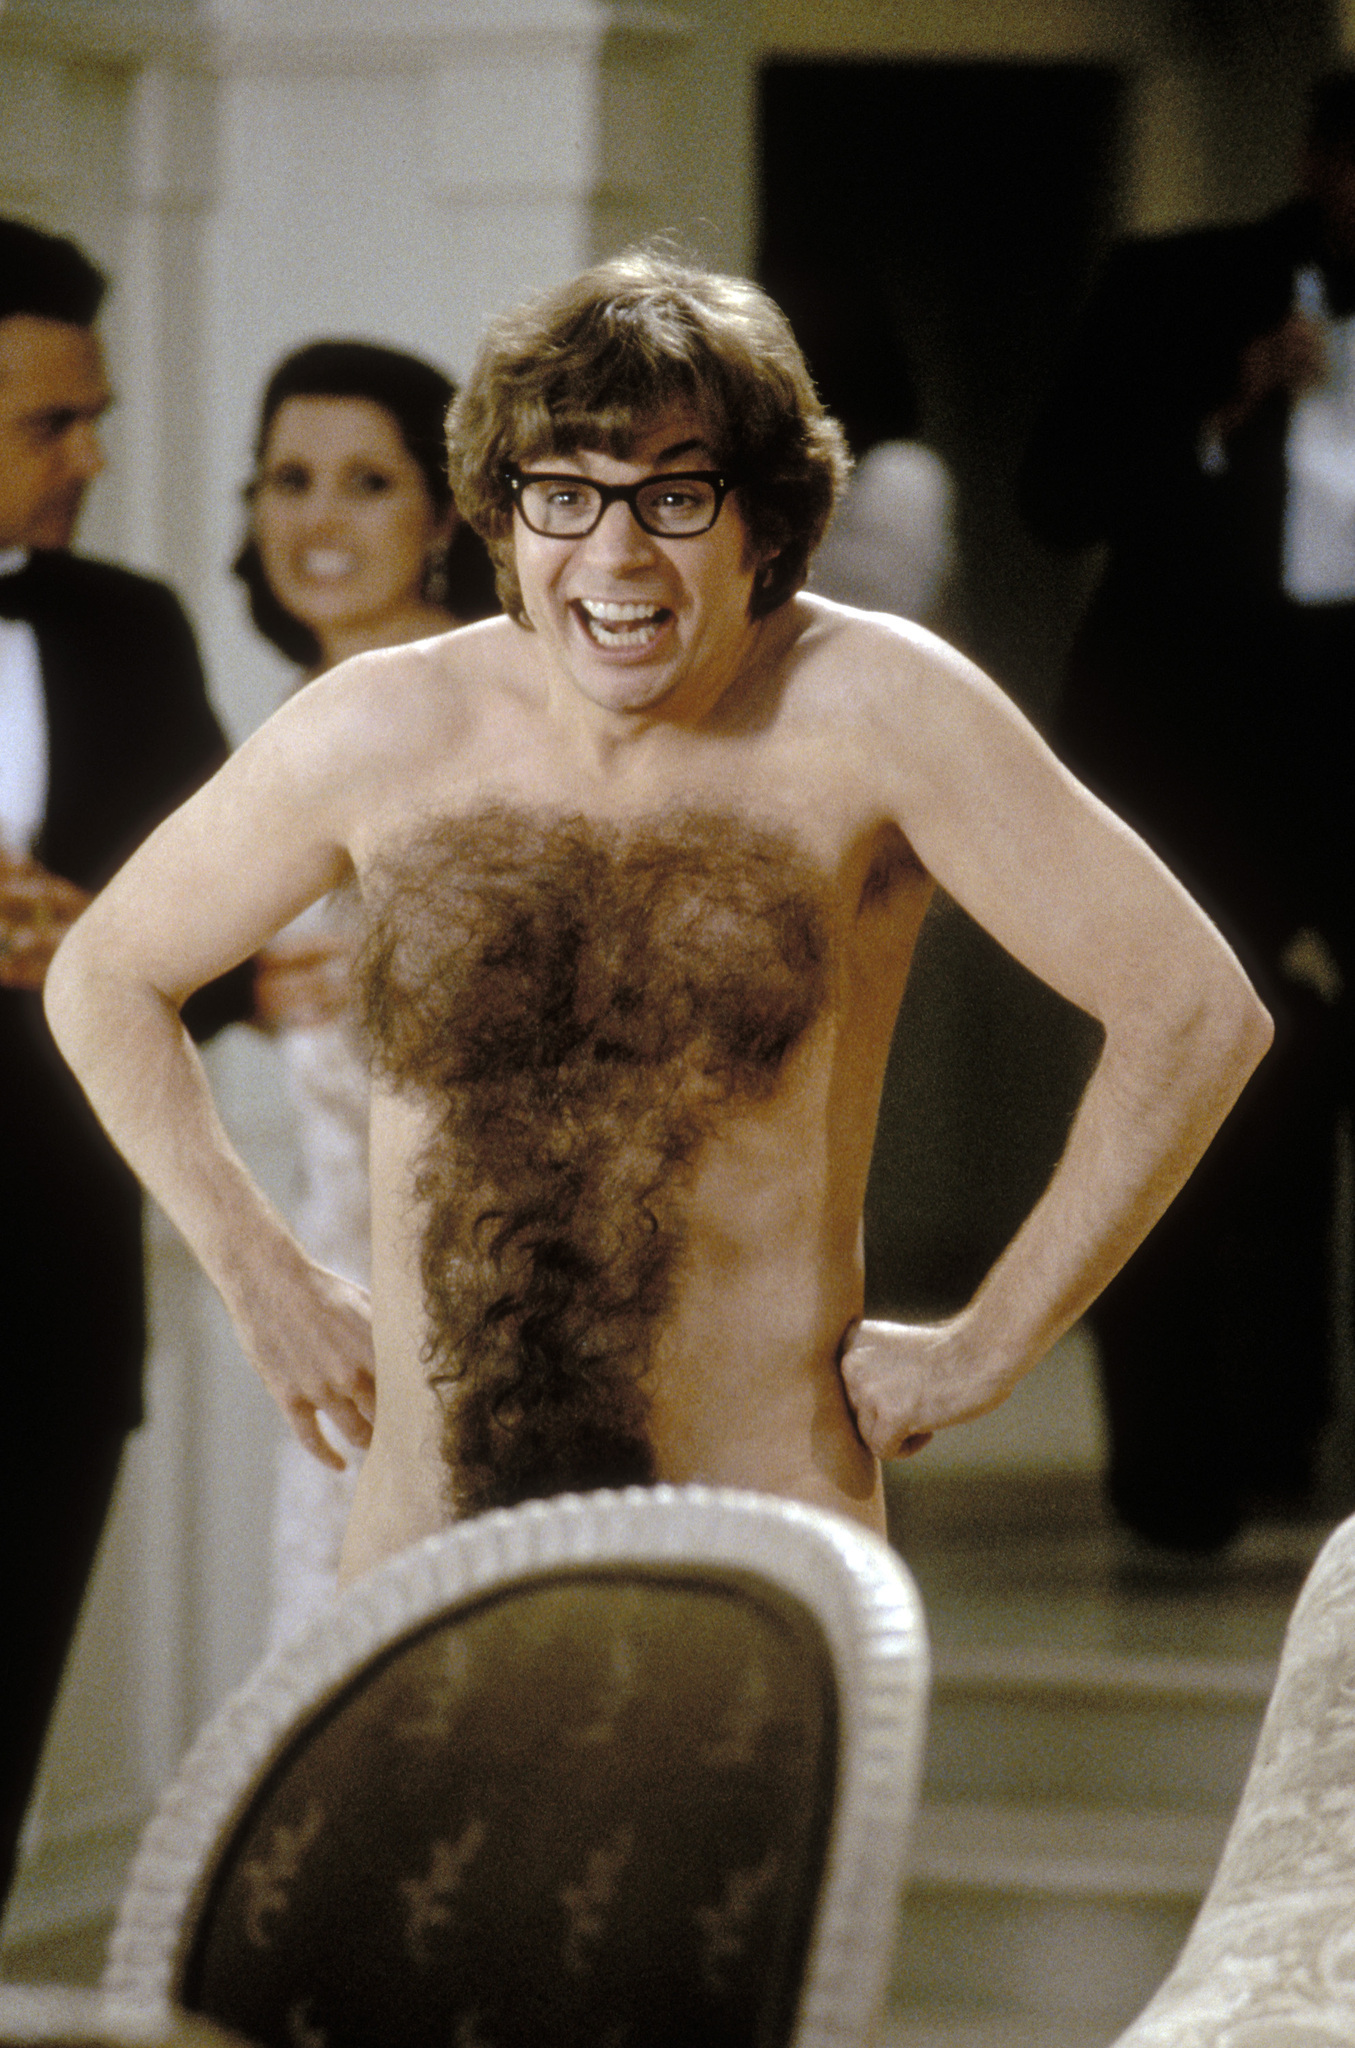 Mike Myers in Austin Powers: The Spy Who Shagged Me (1999)